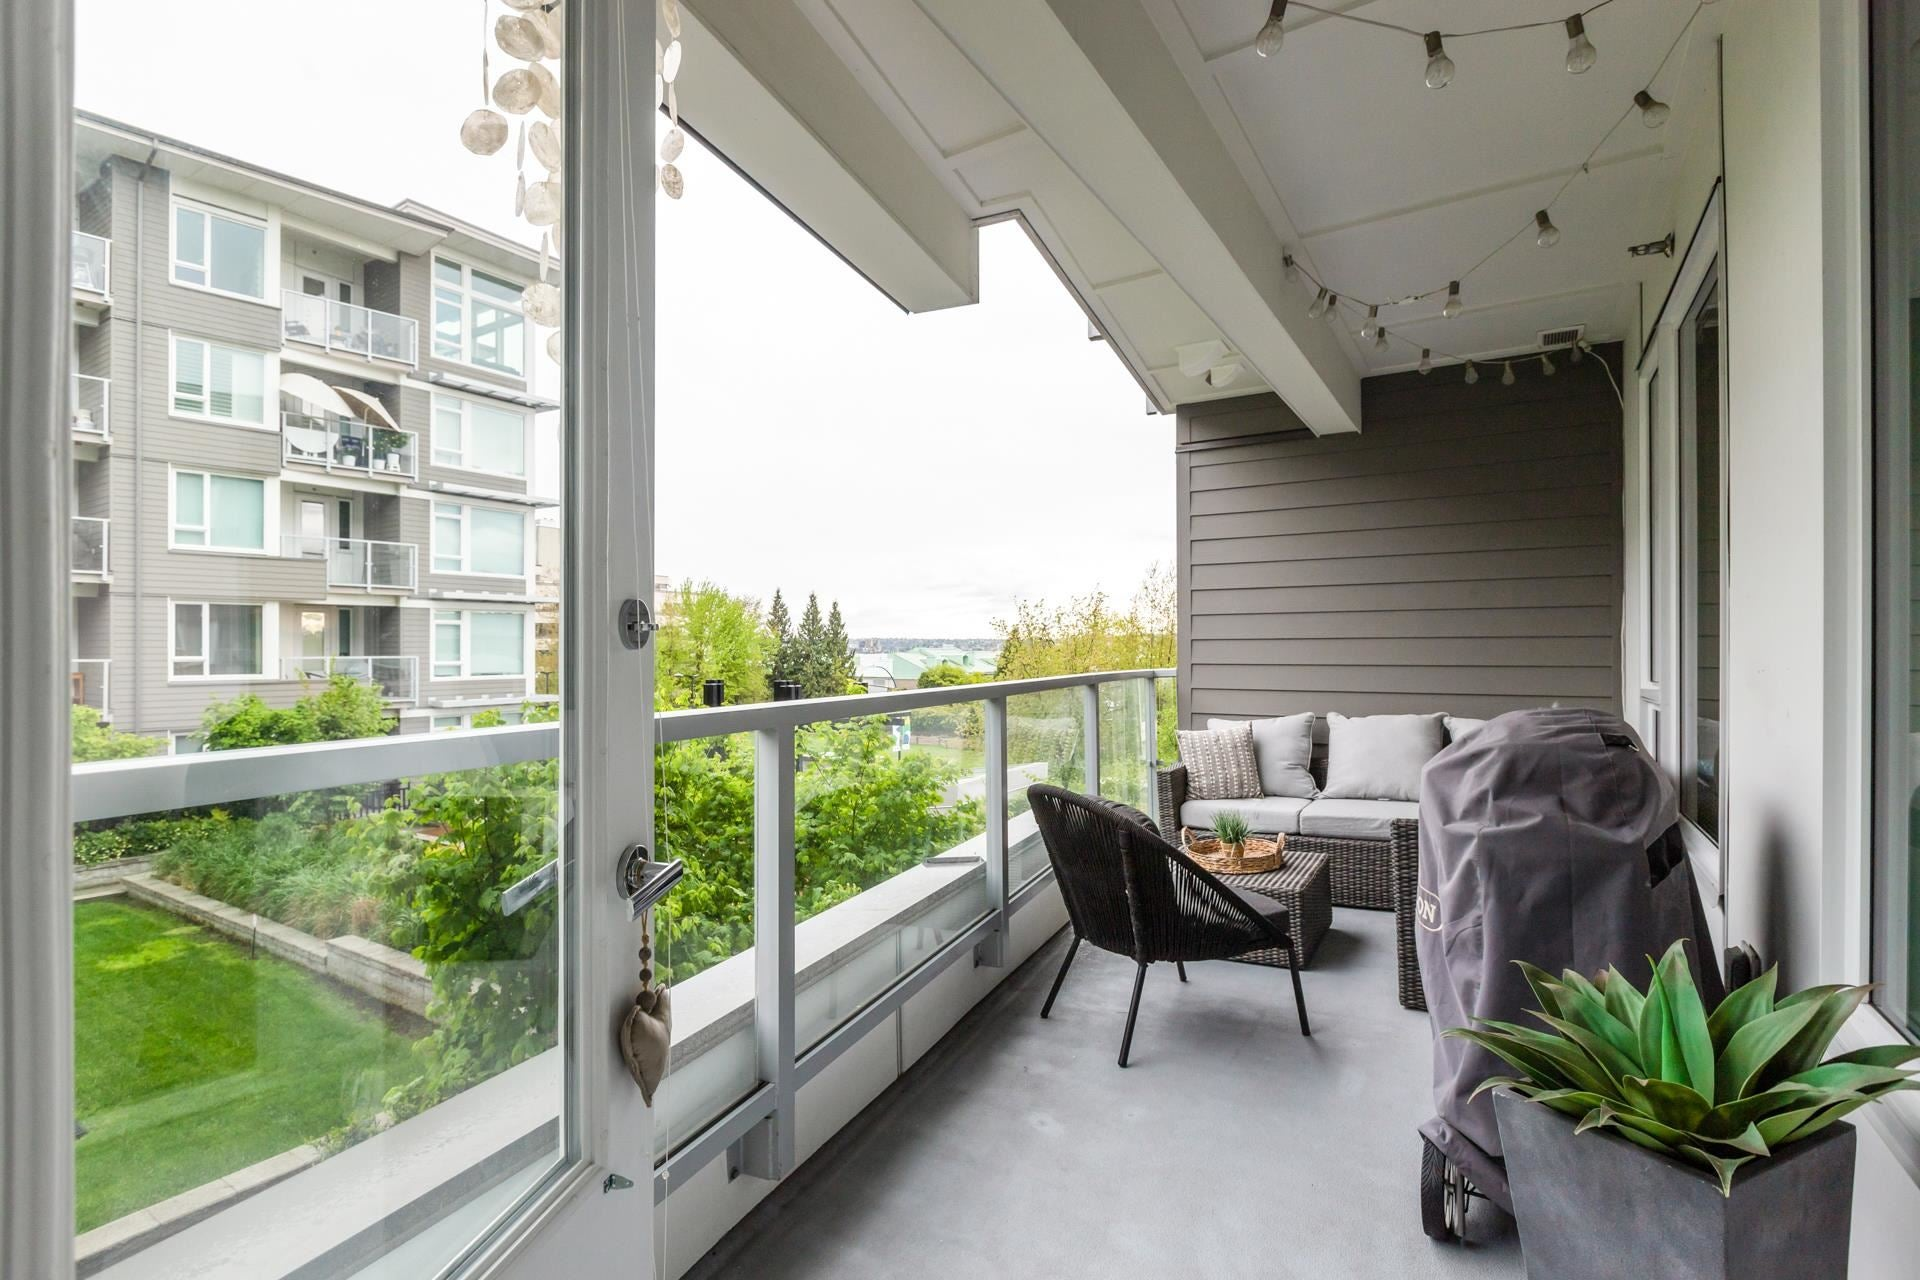 207 255 W 1ST STREET - Lower Lonsdale Apartment/Condo for sale, 2 Bedrooms (R2603882) - #21